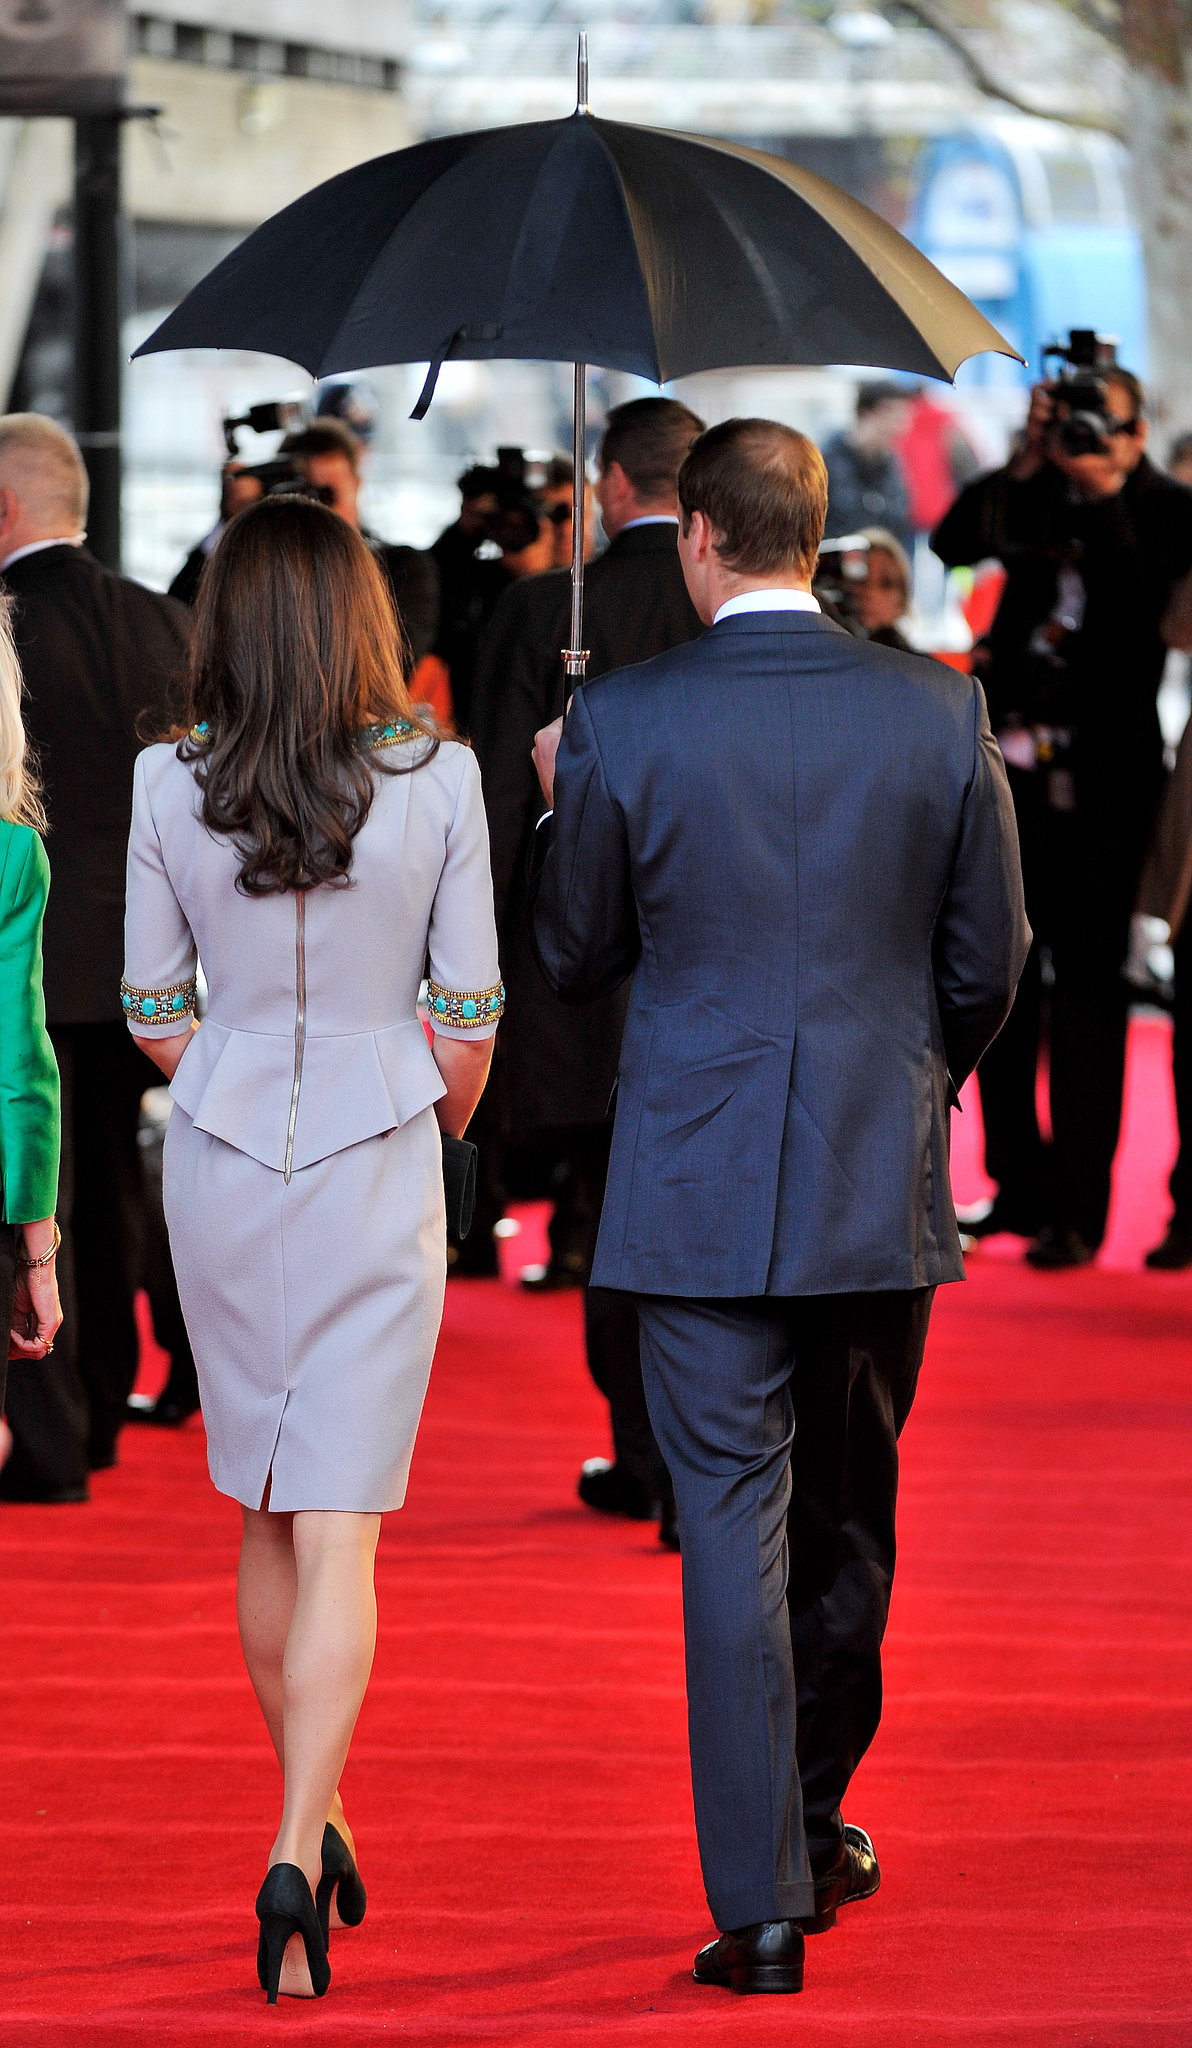 Will and Kate walked side by side into the premiere of African Cats in 2012.